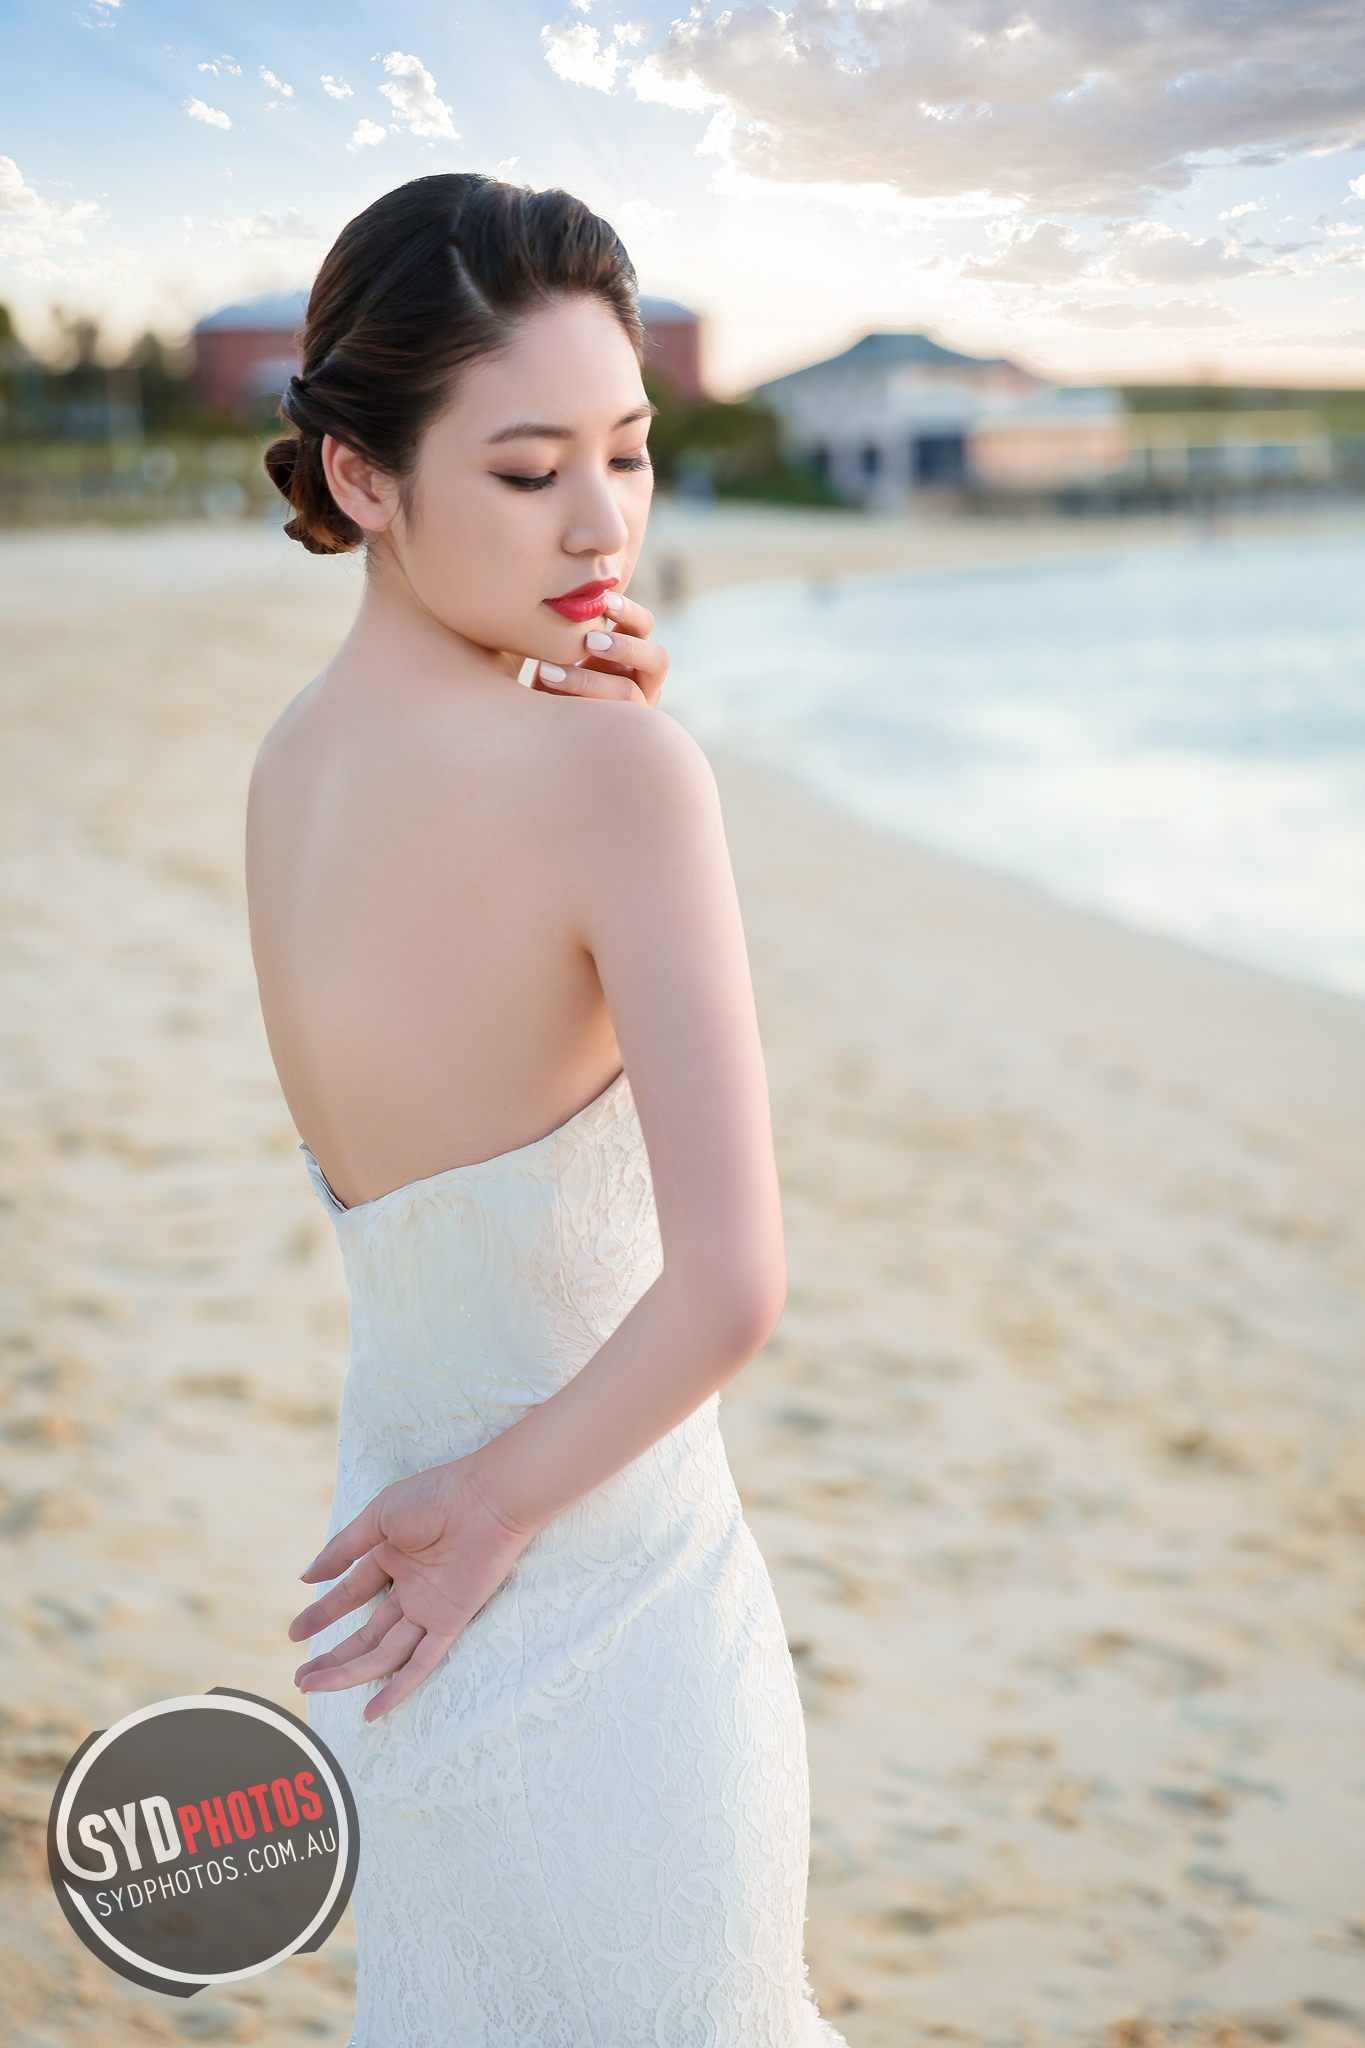 ID-93424-20171210-Cathrine-282.jpg, By Photographer Prewedding, Created on 28 Jan 2018, SYDPHOTOS Photography all rights reserved.